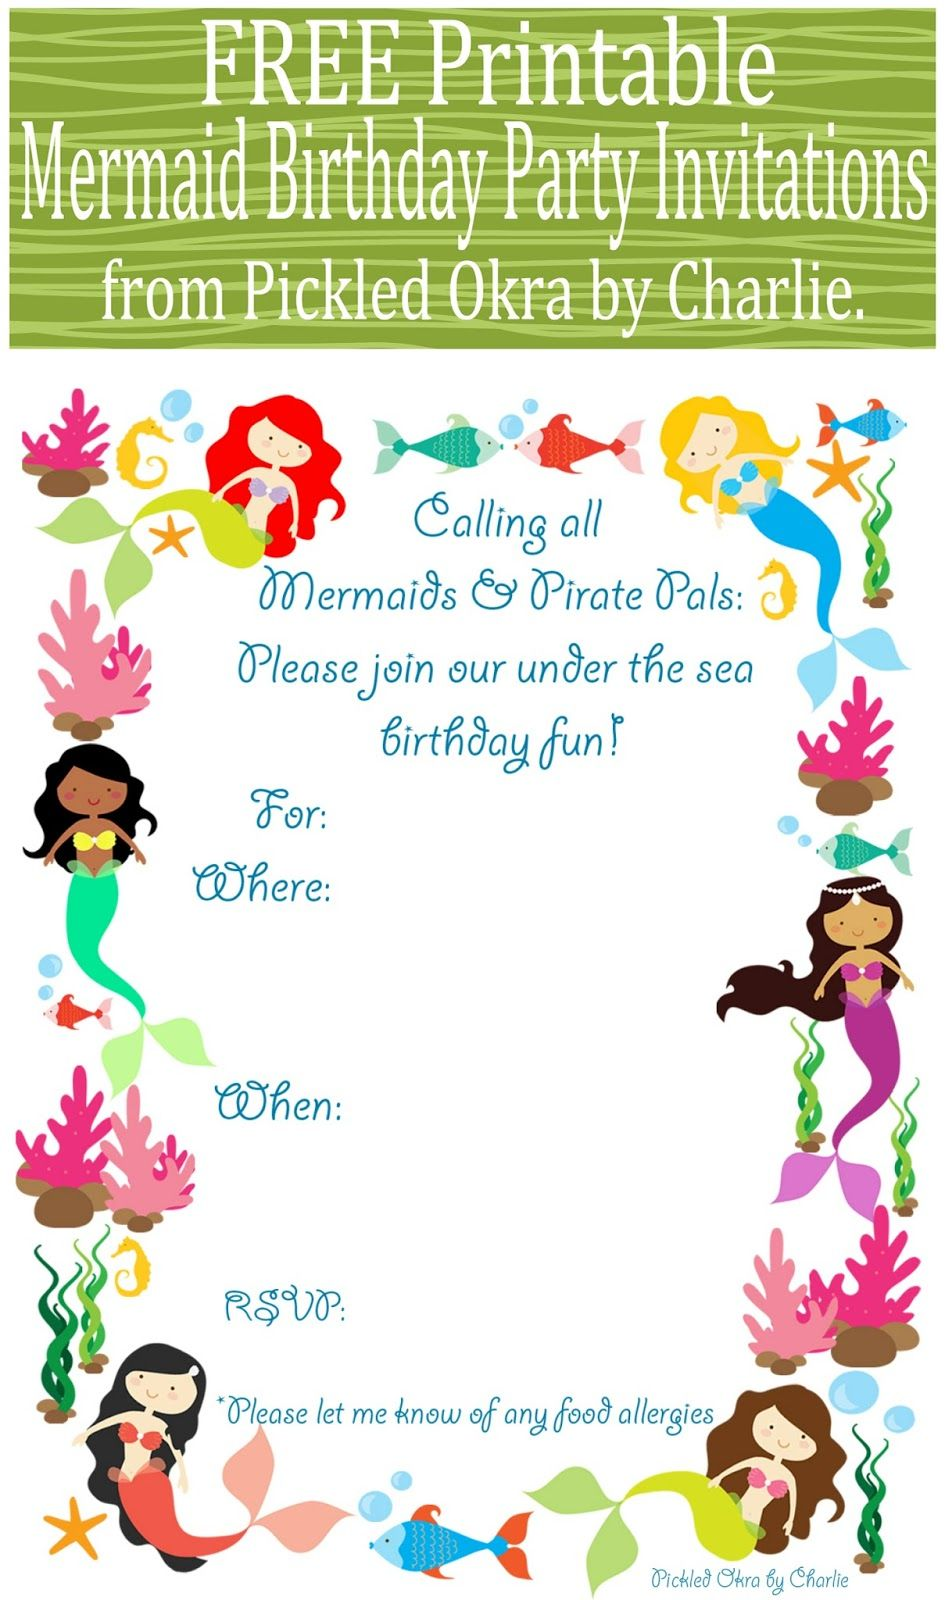 Pickled Okra by Charlie: Mermaid Bithday Party Invitations, Free ...